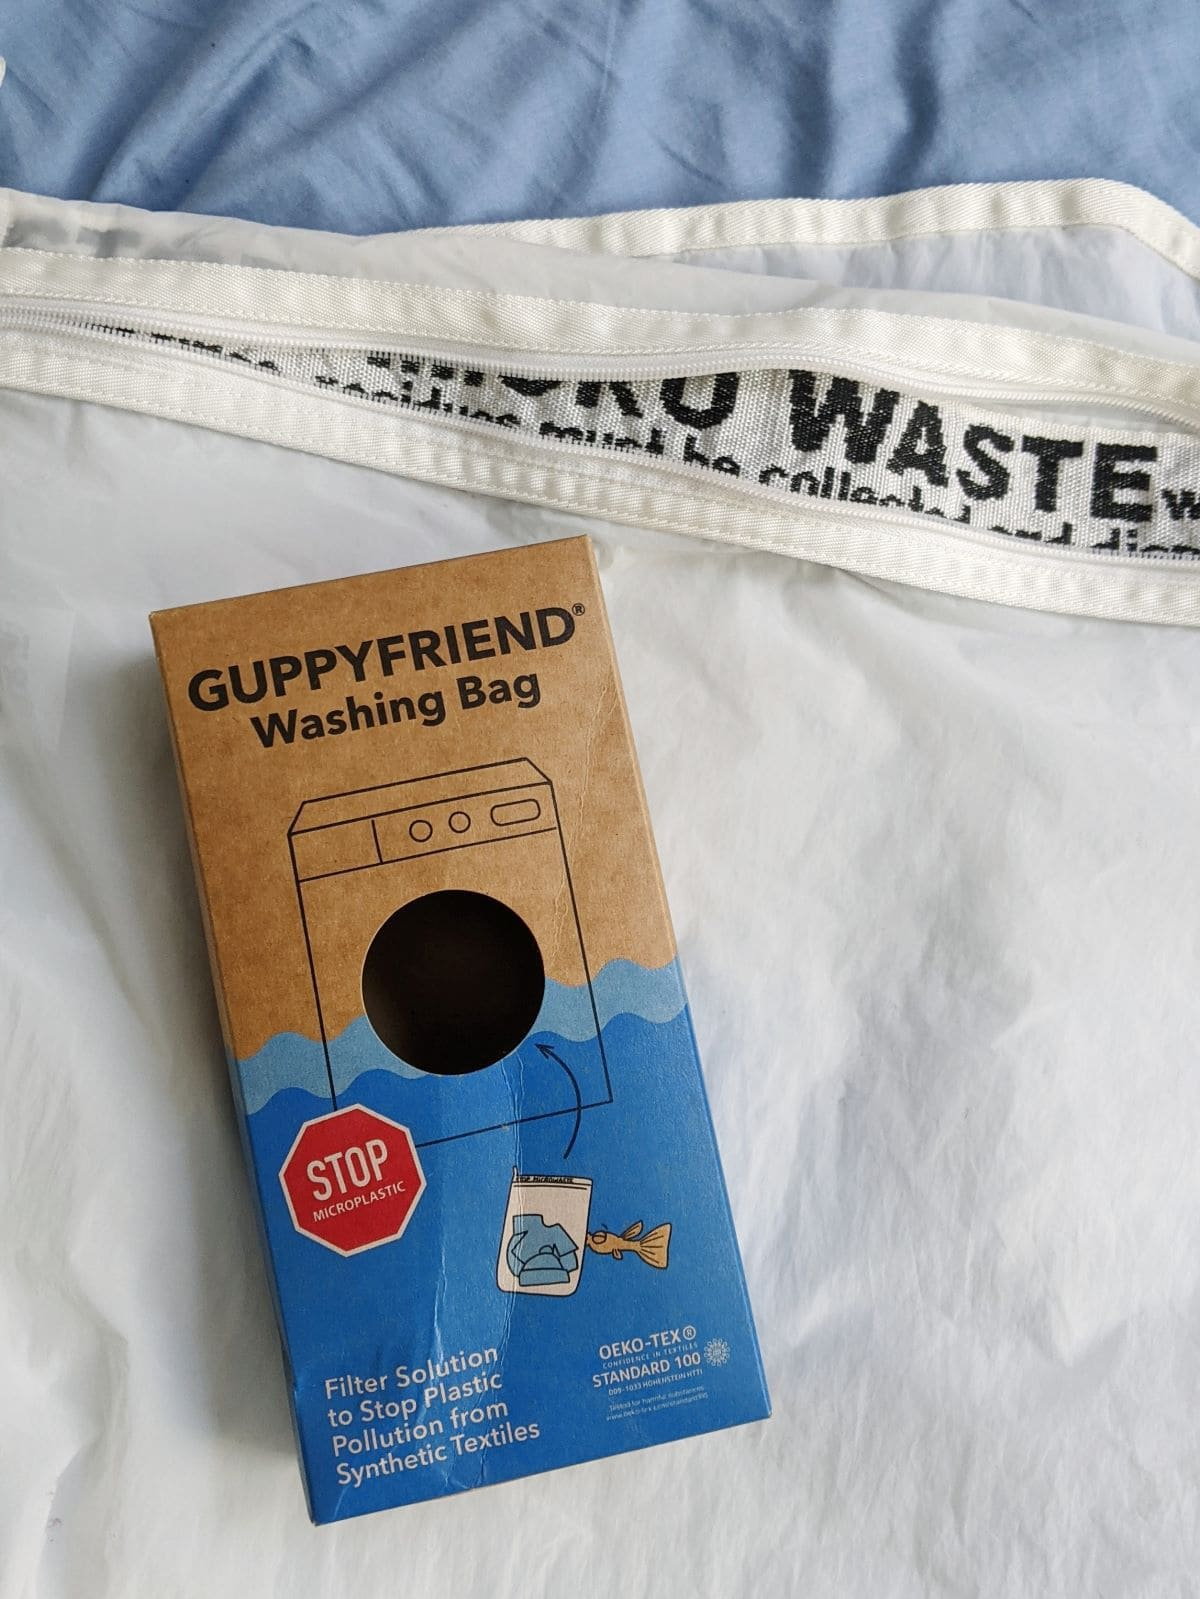 Guppyfriend washing bag with the box for the bag on top